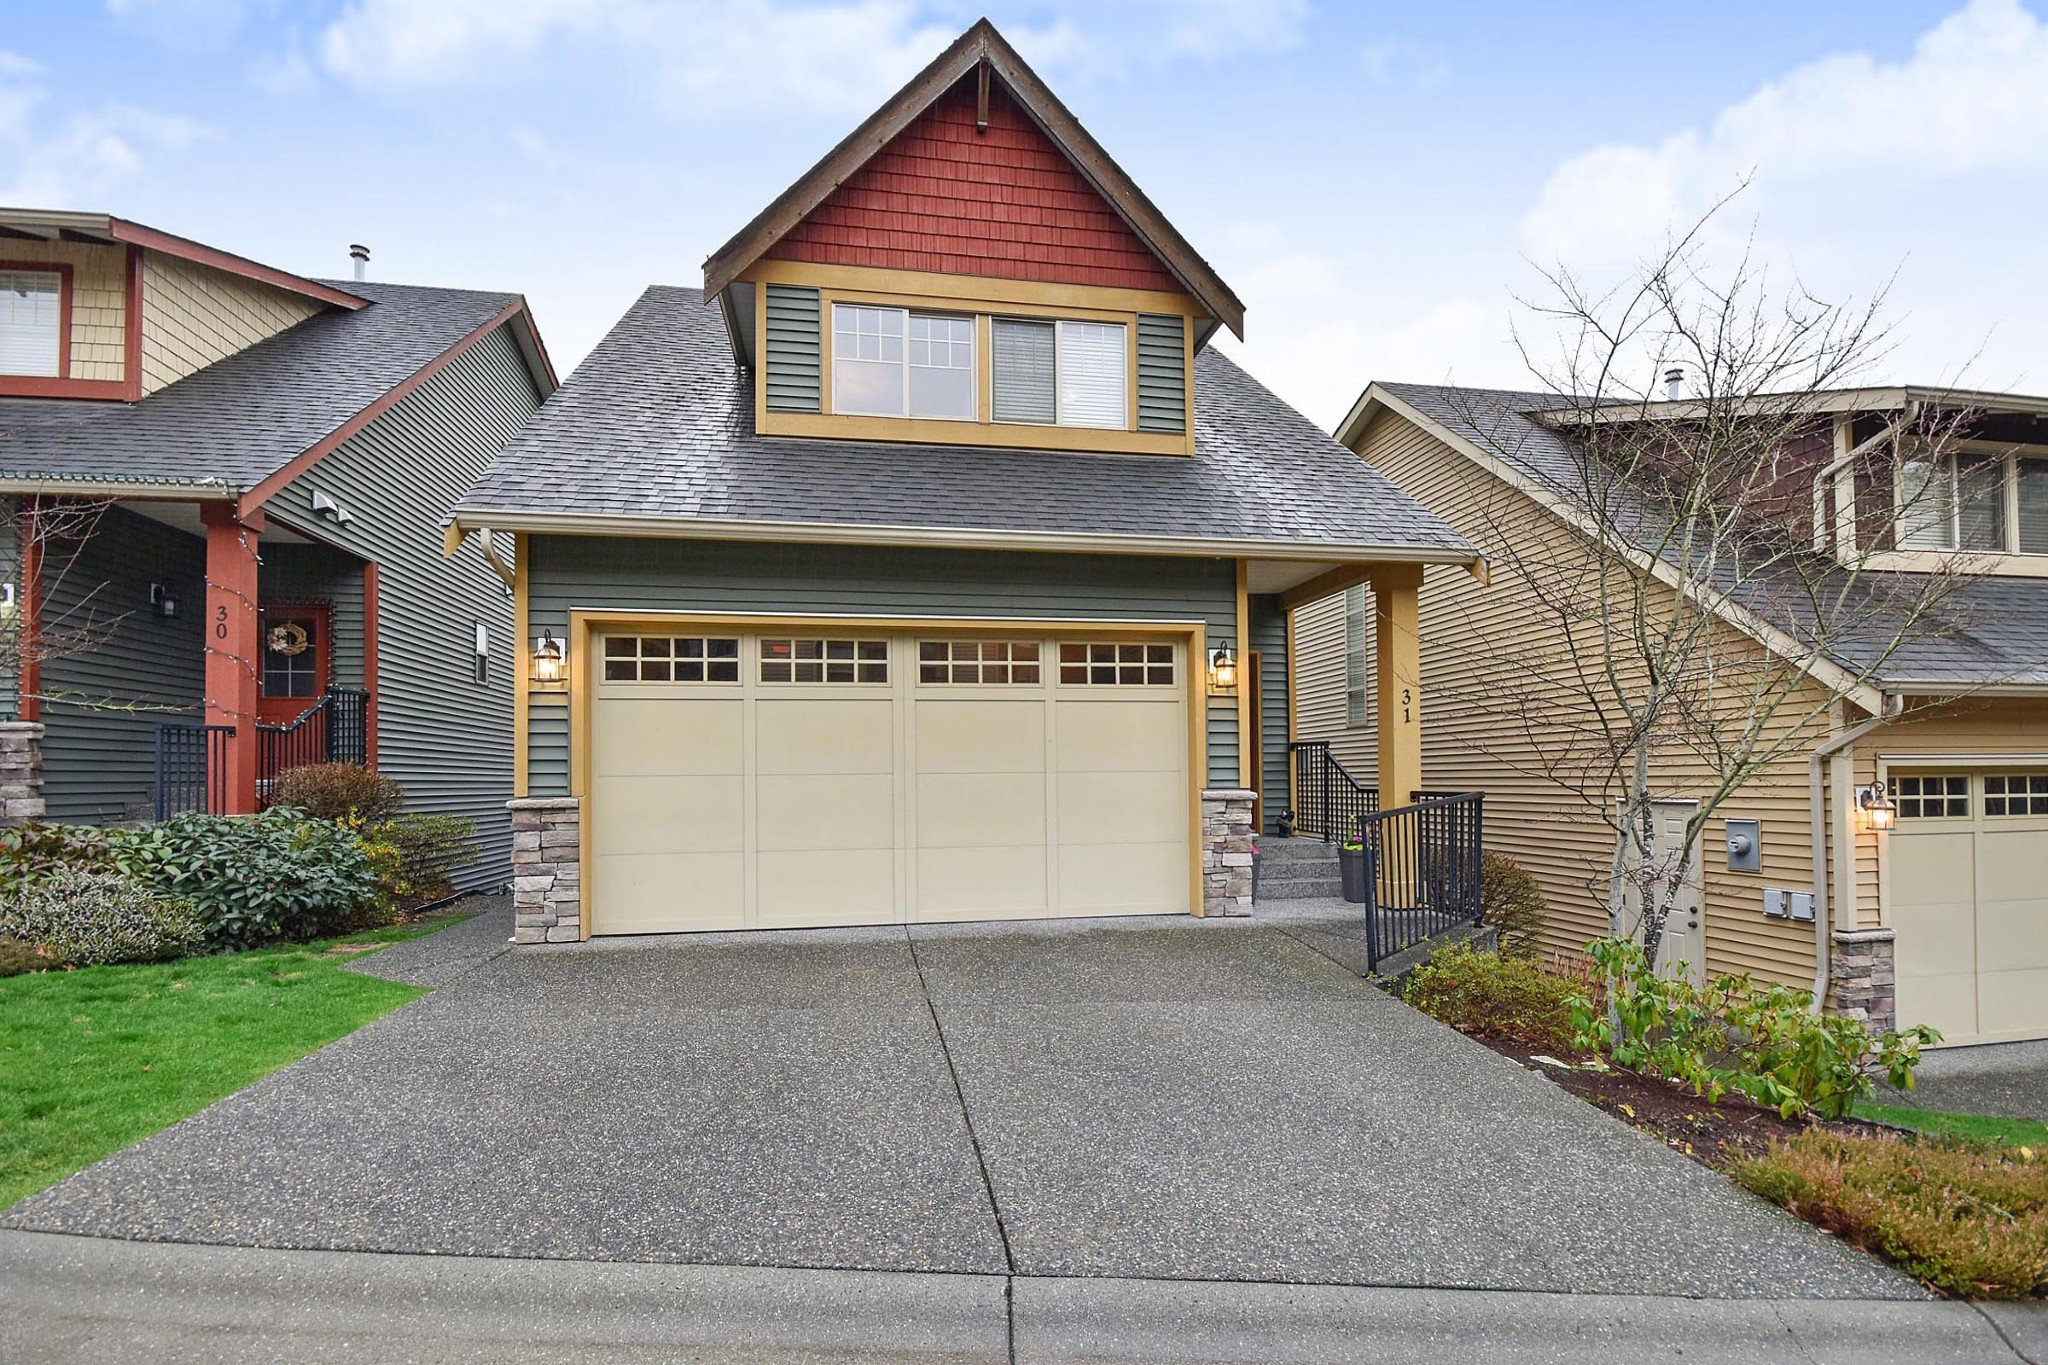 """Main Photo: 31 36169 LOWER SUMAS MTN Road in Abbotsford: Abbotsford East Townhouse for sale in """"Junction Creek"""" : MLS®# R2426451"""